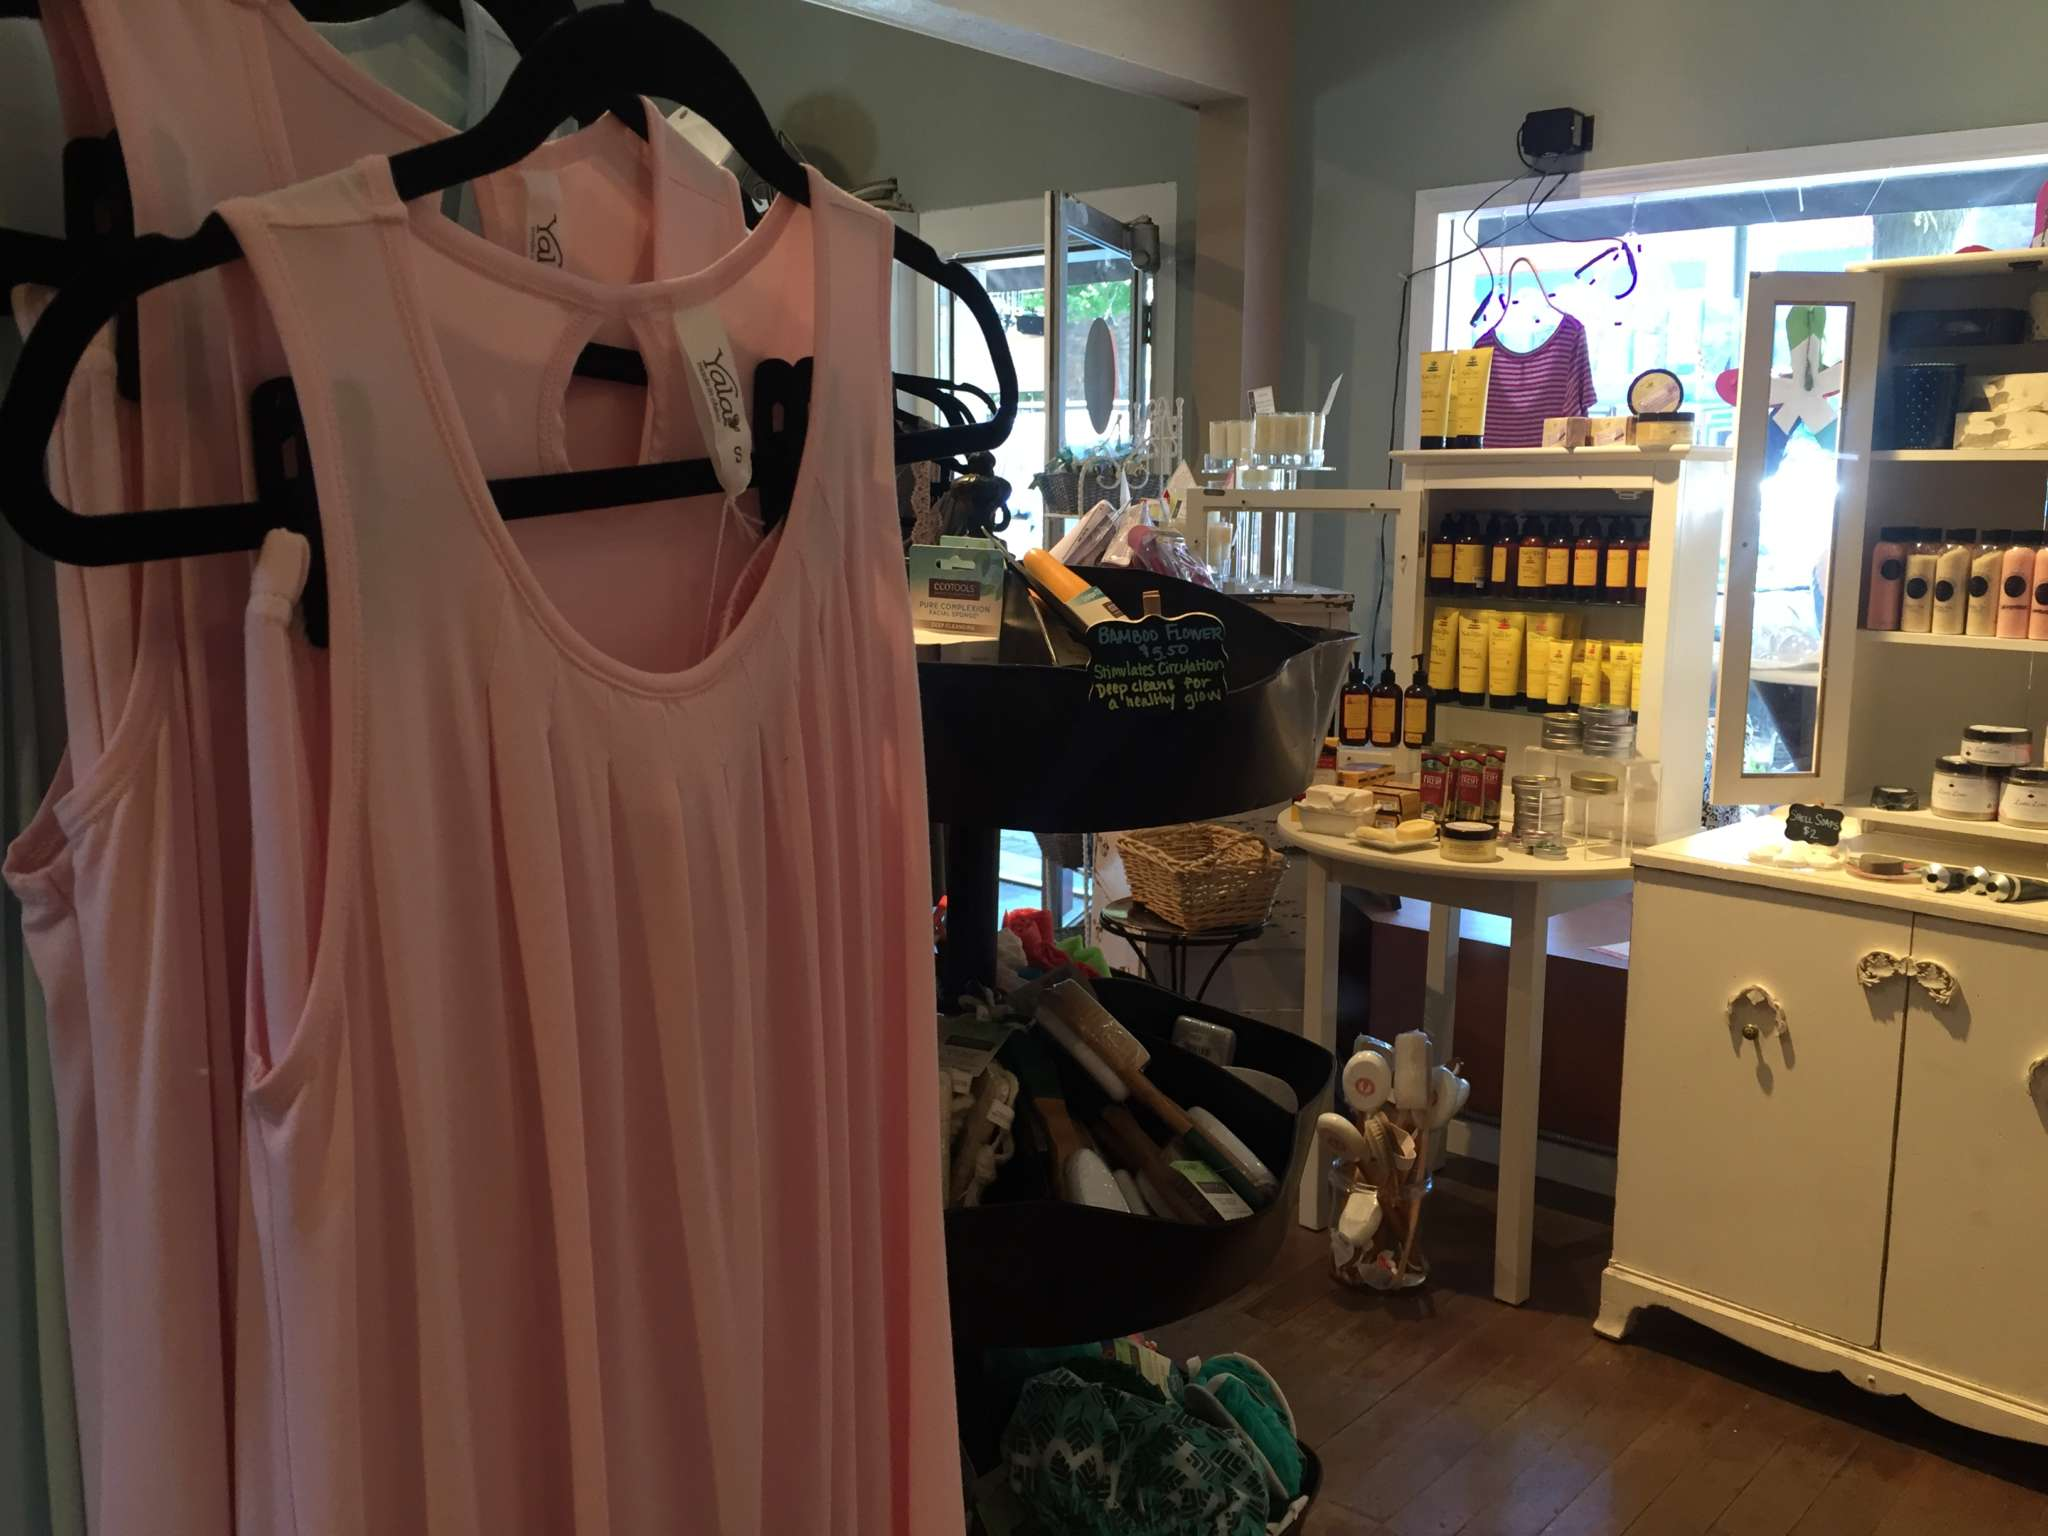 Yala Bamboo sleepwear from Oregon Body & Bath is essential for a relaxing Bend vacation.